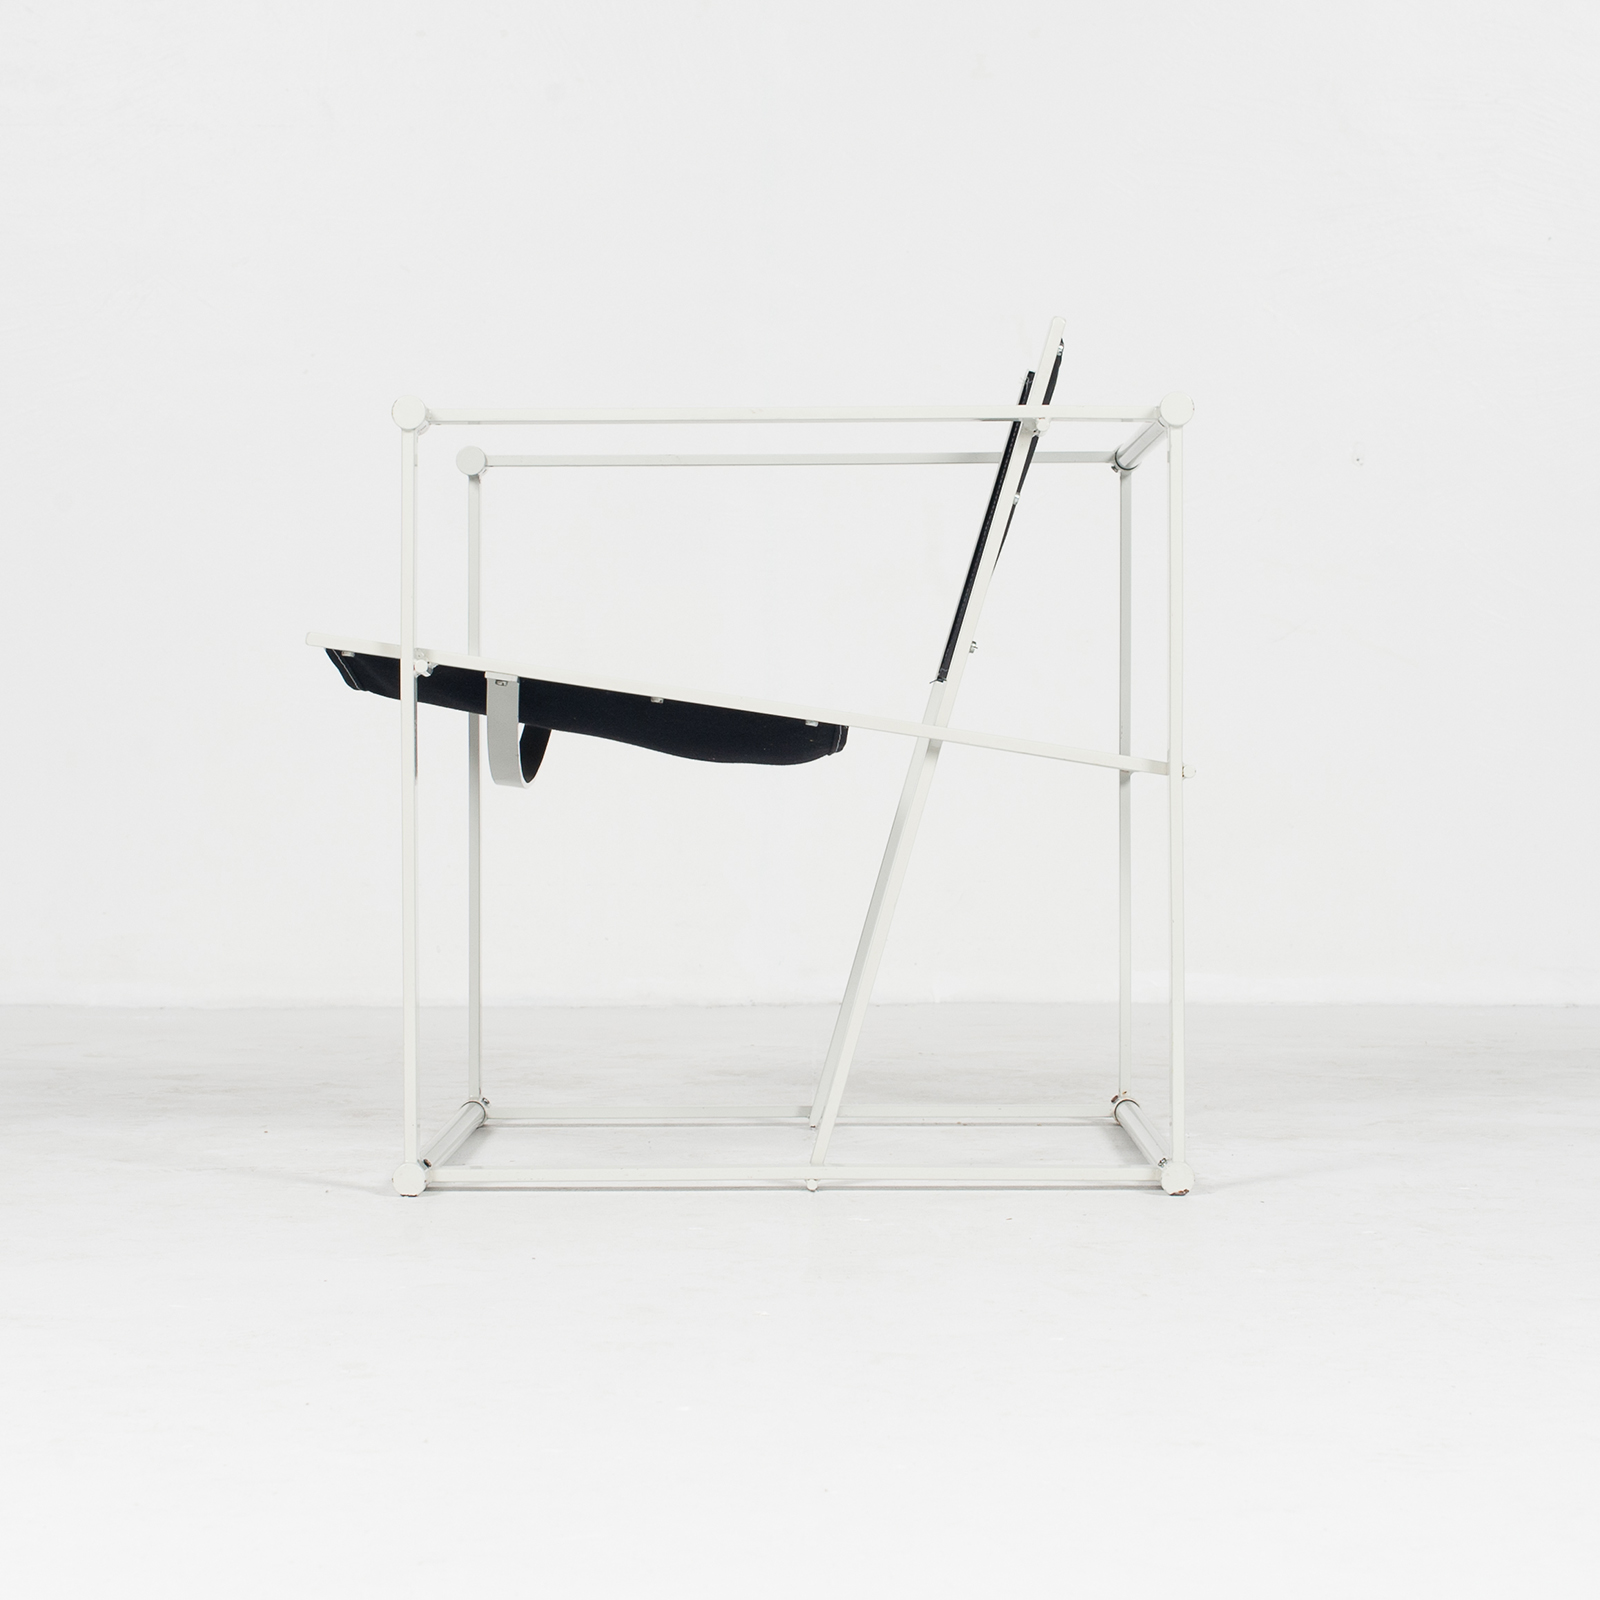 Model Fm60 Cubic Chair By Radboud Van Beekum For Pastoe In Black Canvas And Grey Frame, 1980s, The Netherlands36